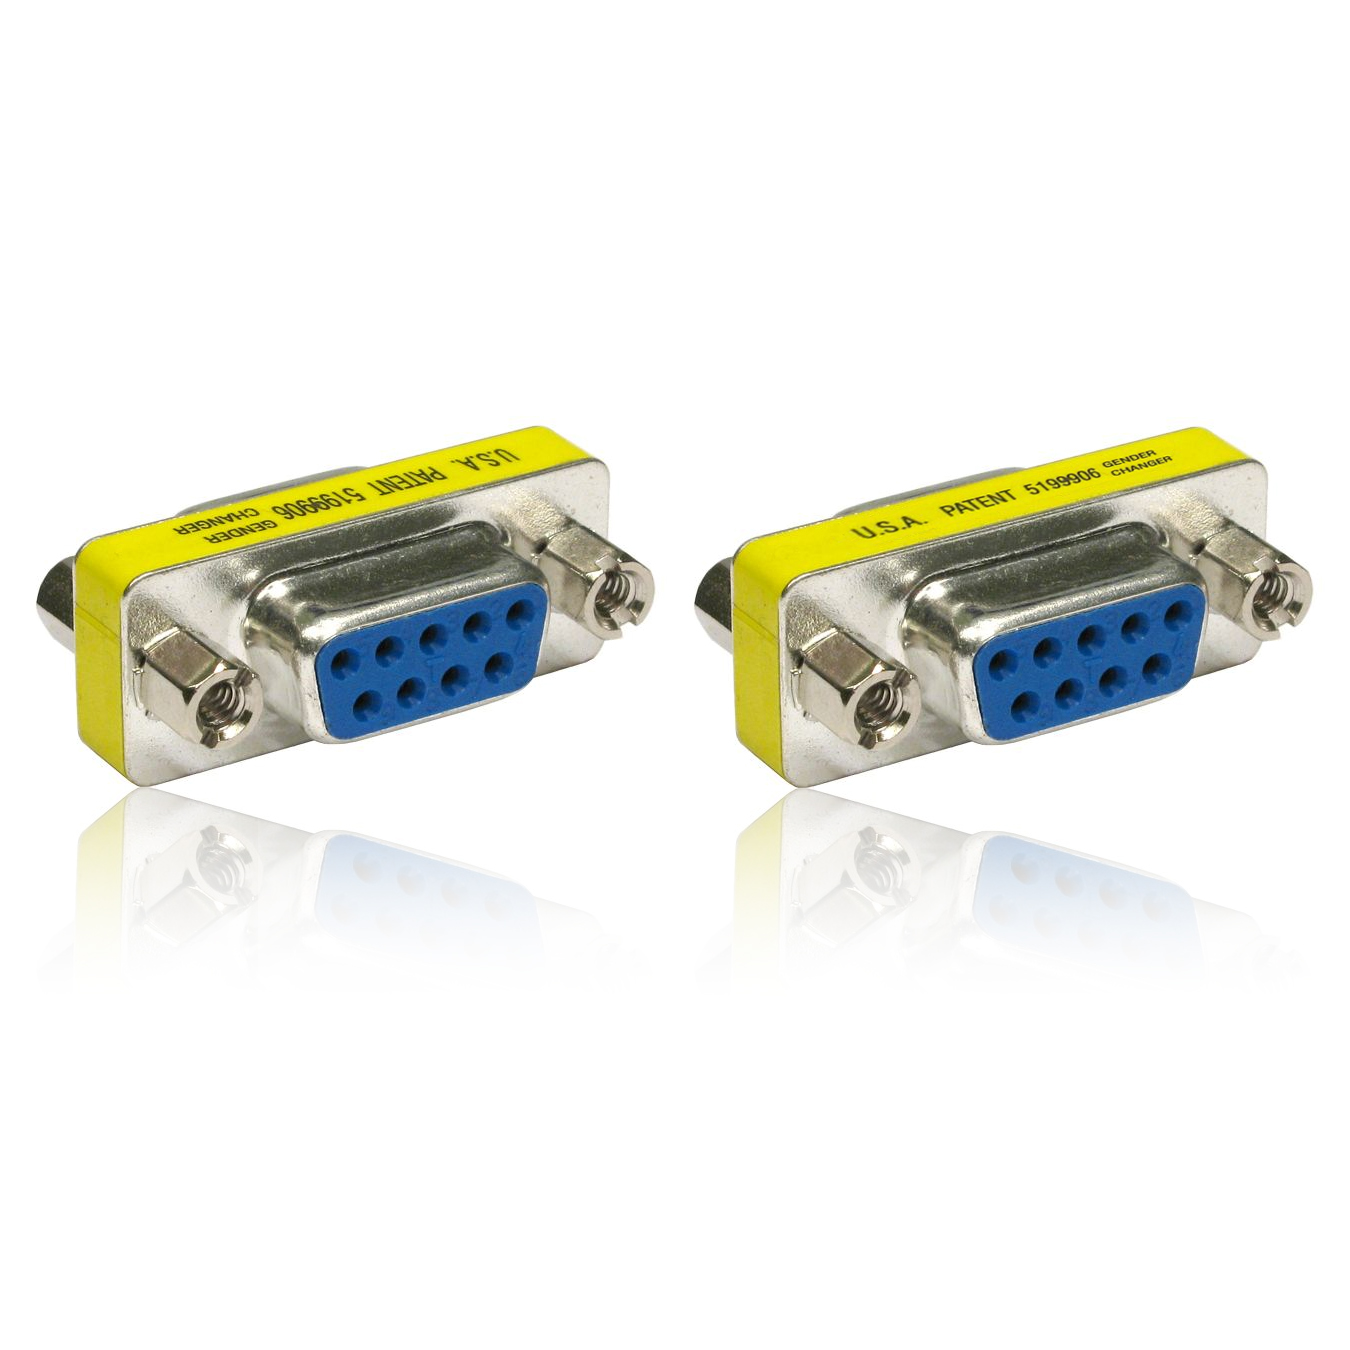 DB9 Serial RS232 COM Gender Changer for USB to RS232 Serial Cable Adapter F//F